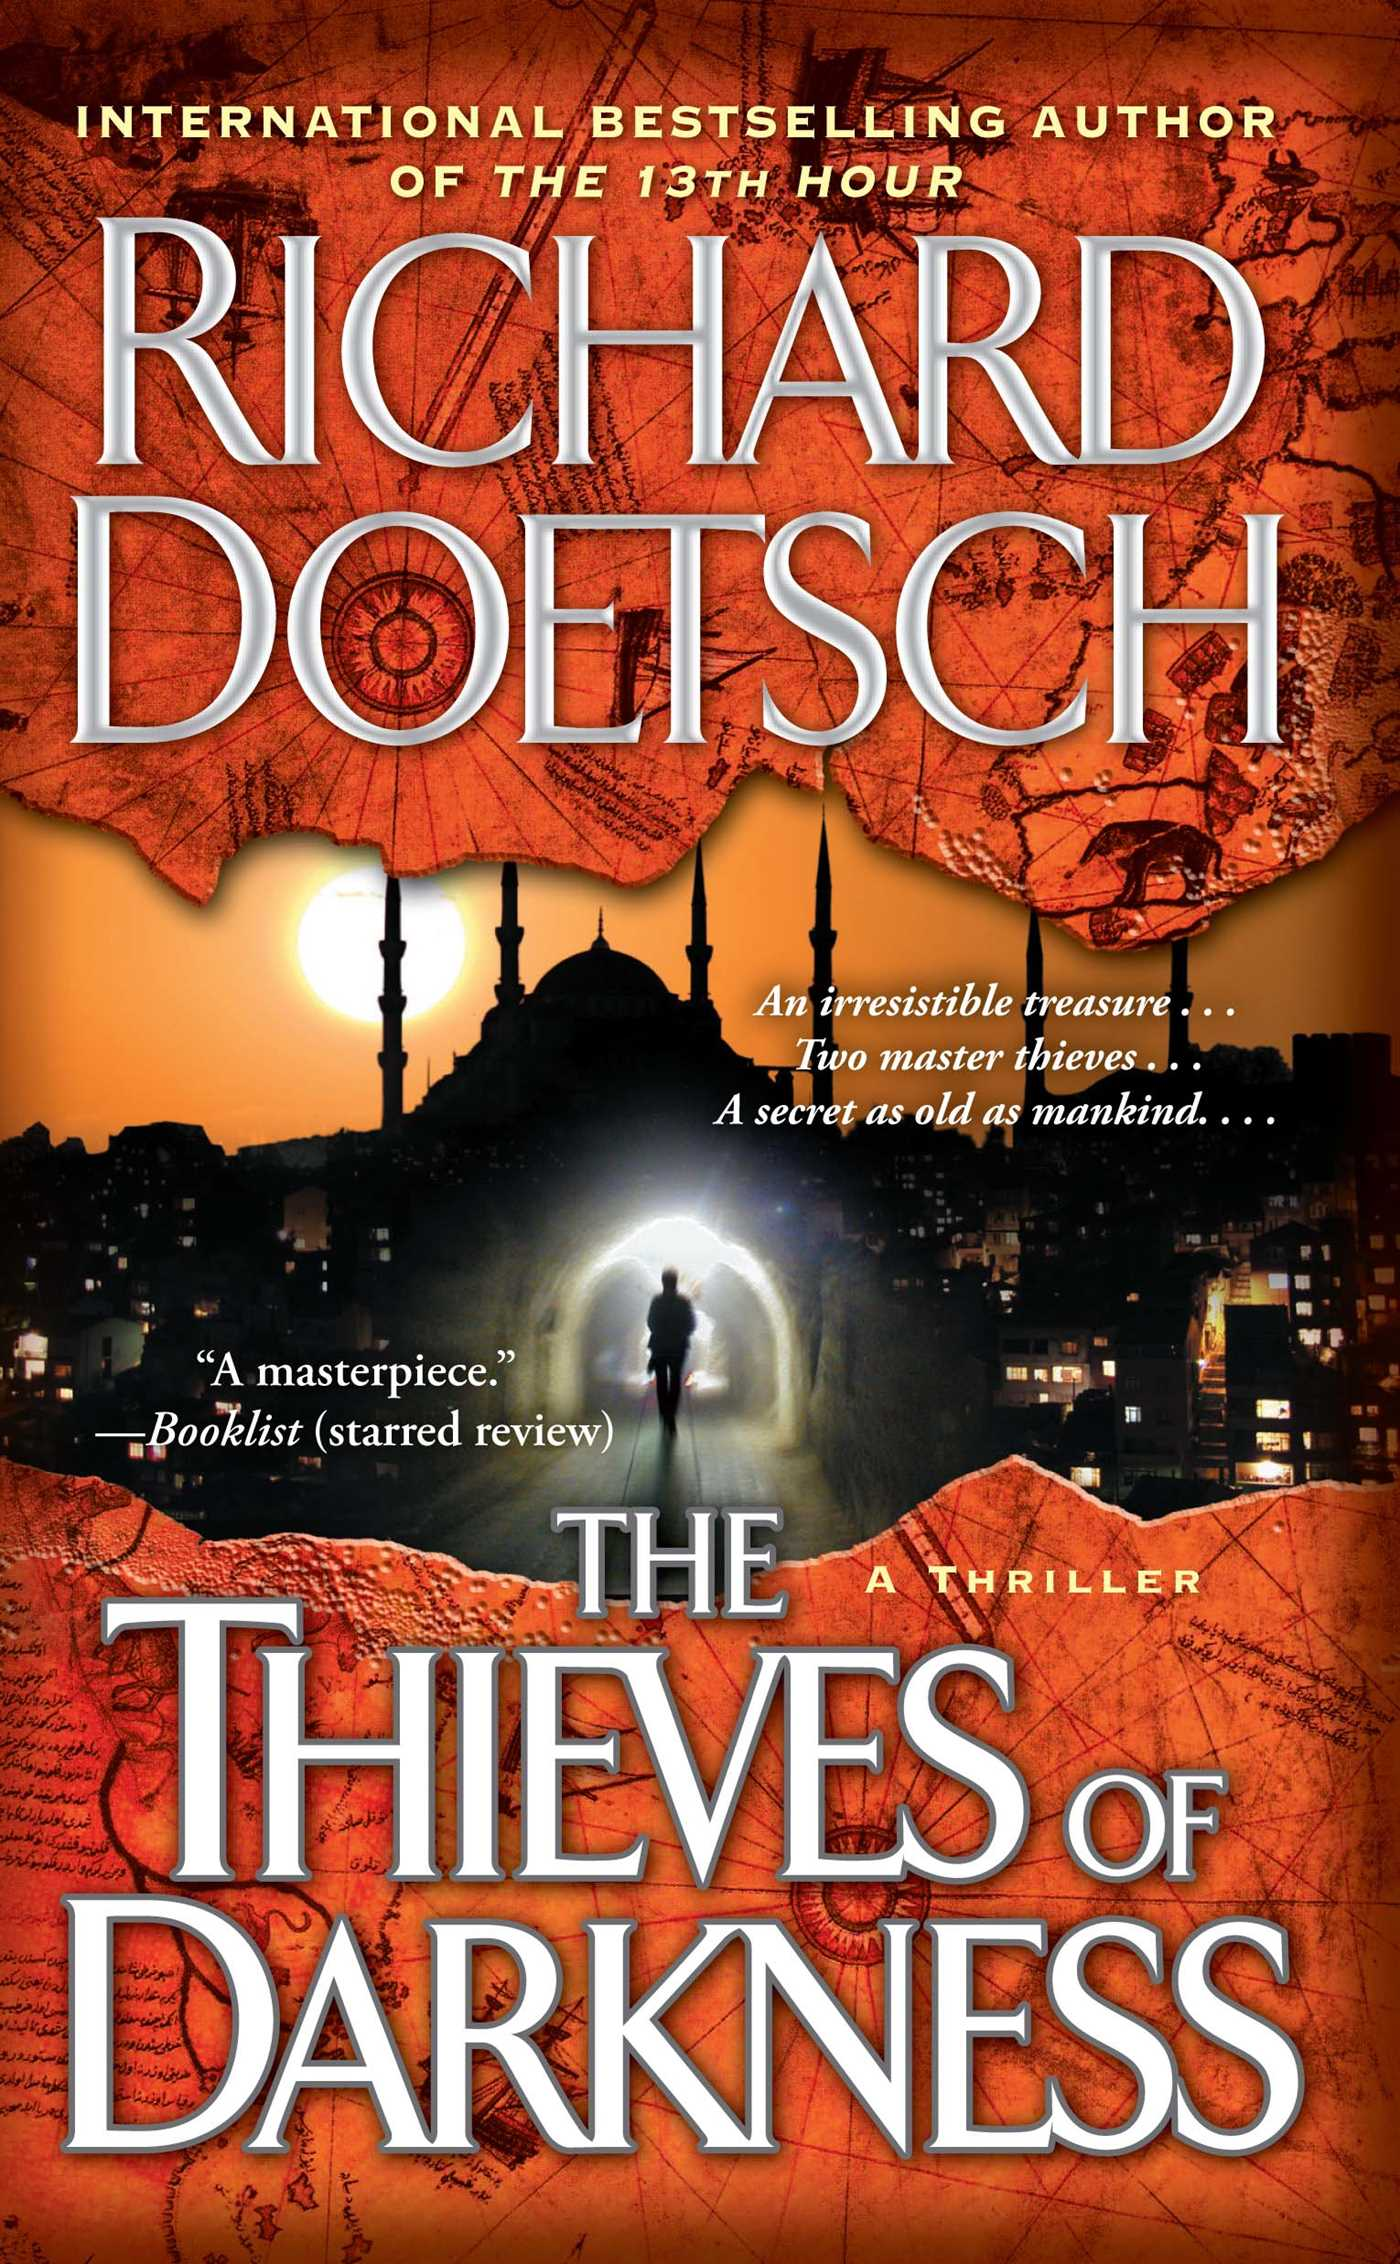 The thieves of darkness 9781439103289 hr